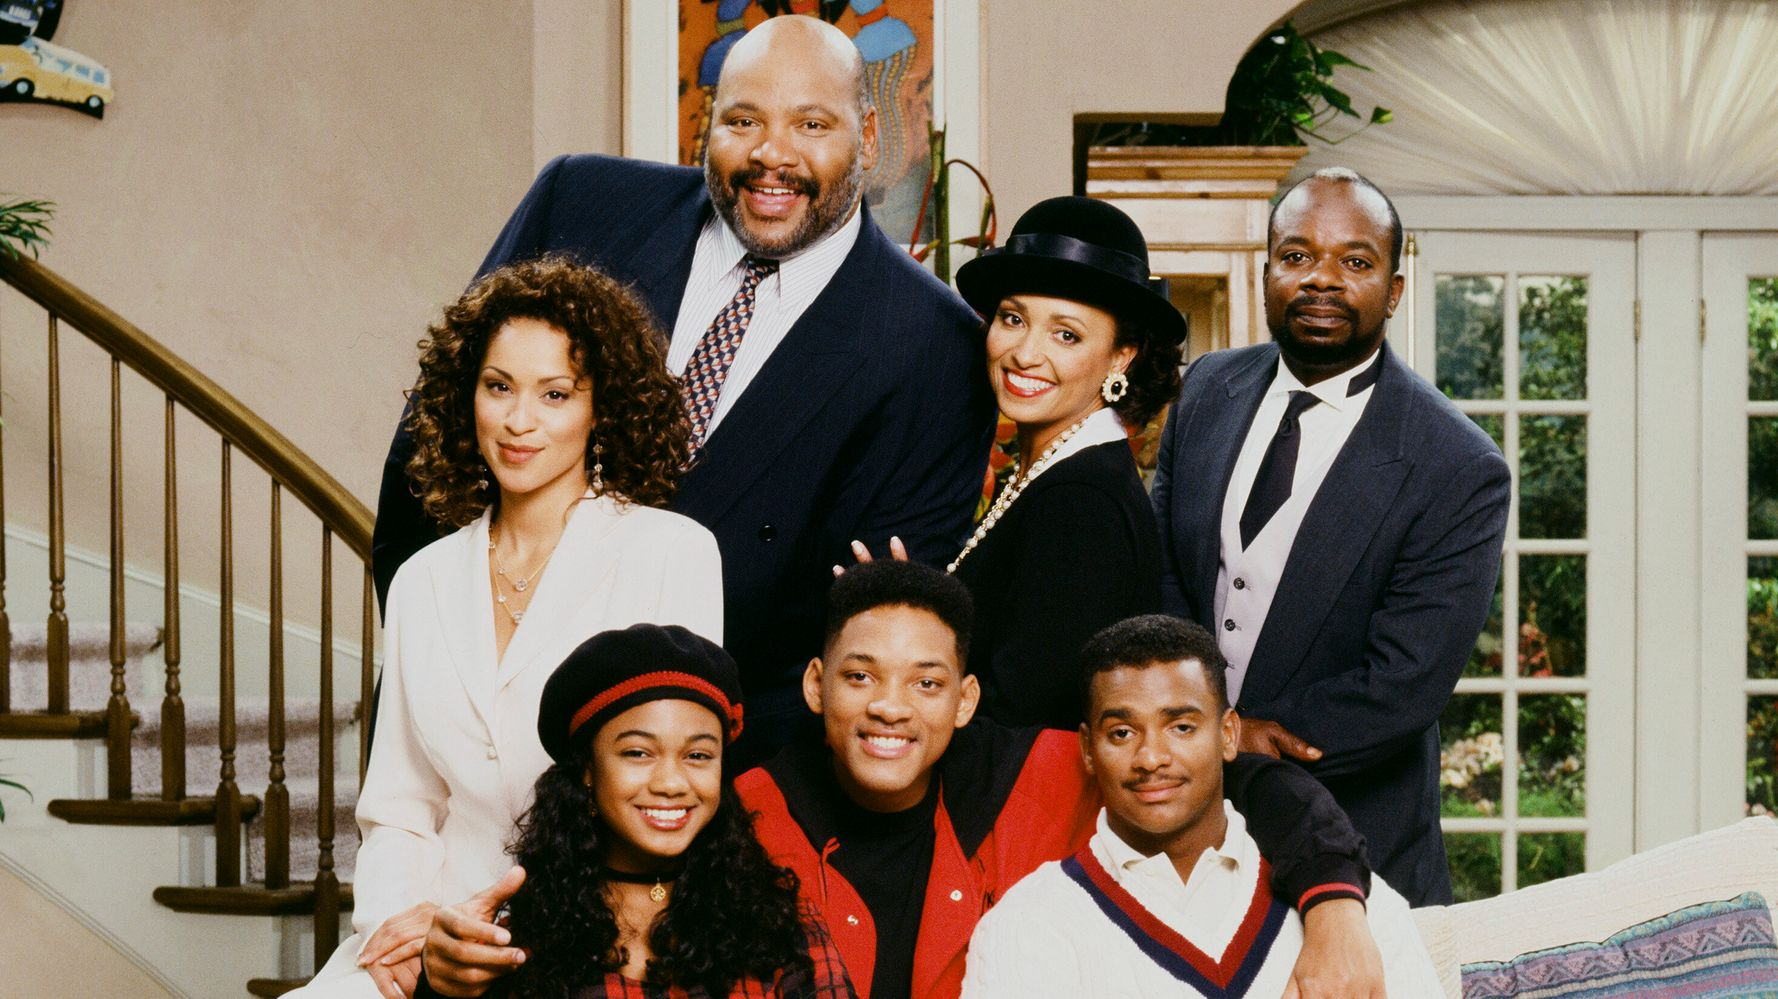 The Trailer For The 'Fresh Prince Of Bel-Air' Reunion Special Is Here